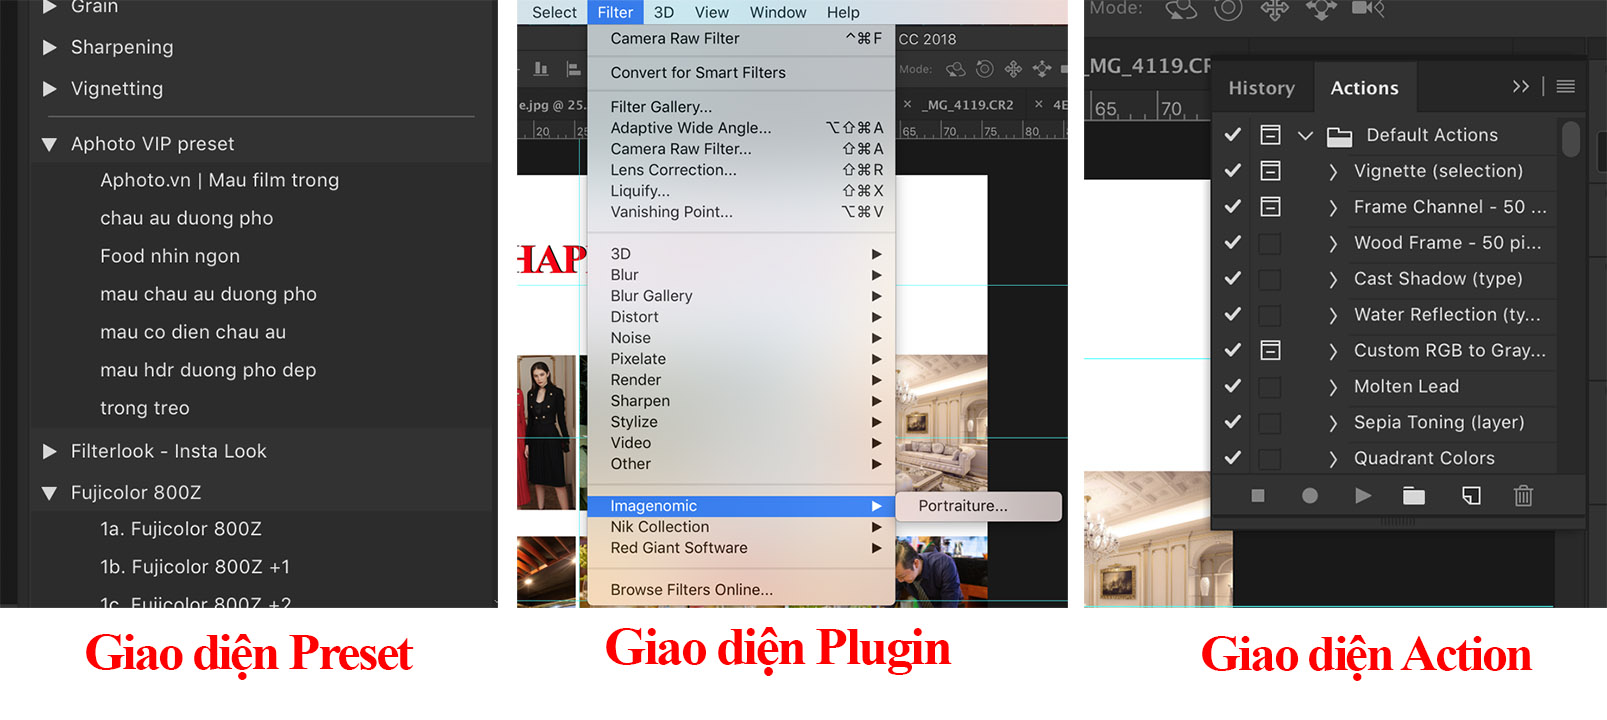 Preset, plugin và action